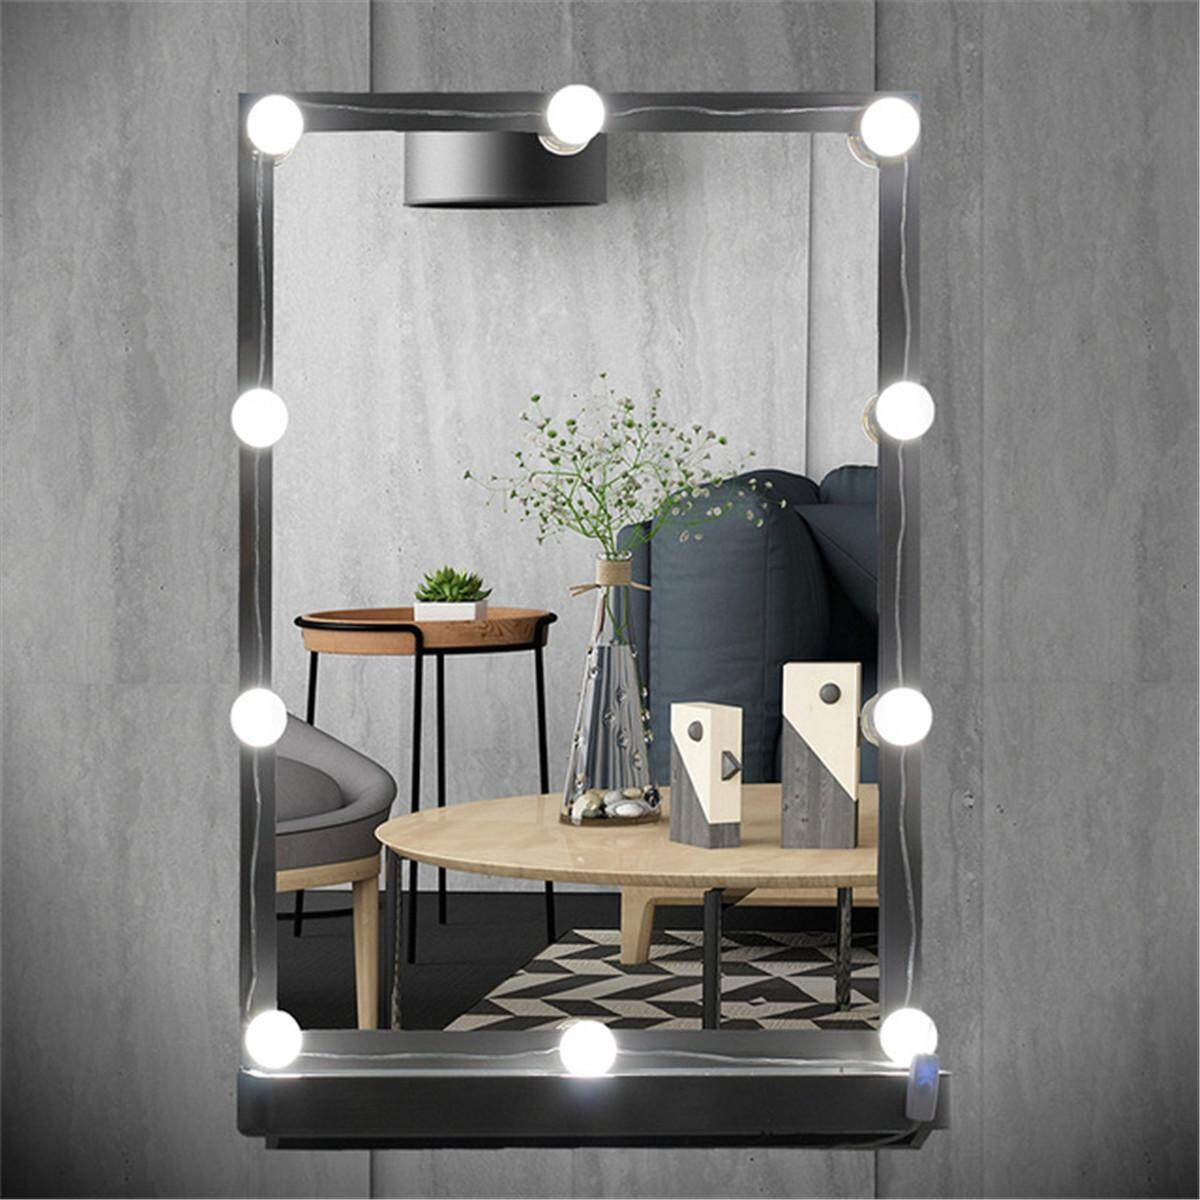 Buy Sell Cheapest Tingreat Hollywood Makeup Best Quality Product Kaca Rias Cermin Led 8 Lampu Mirror 10 W Vanity Bohlam Kit Untuk Berpakaian Gaya Au Plug